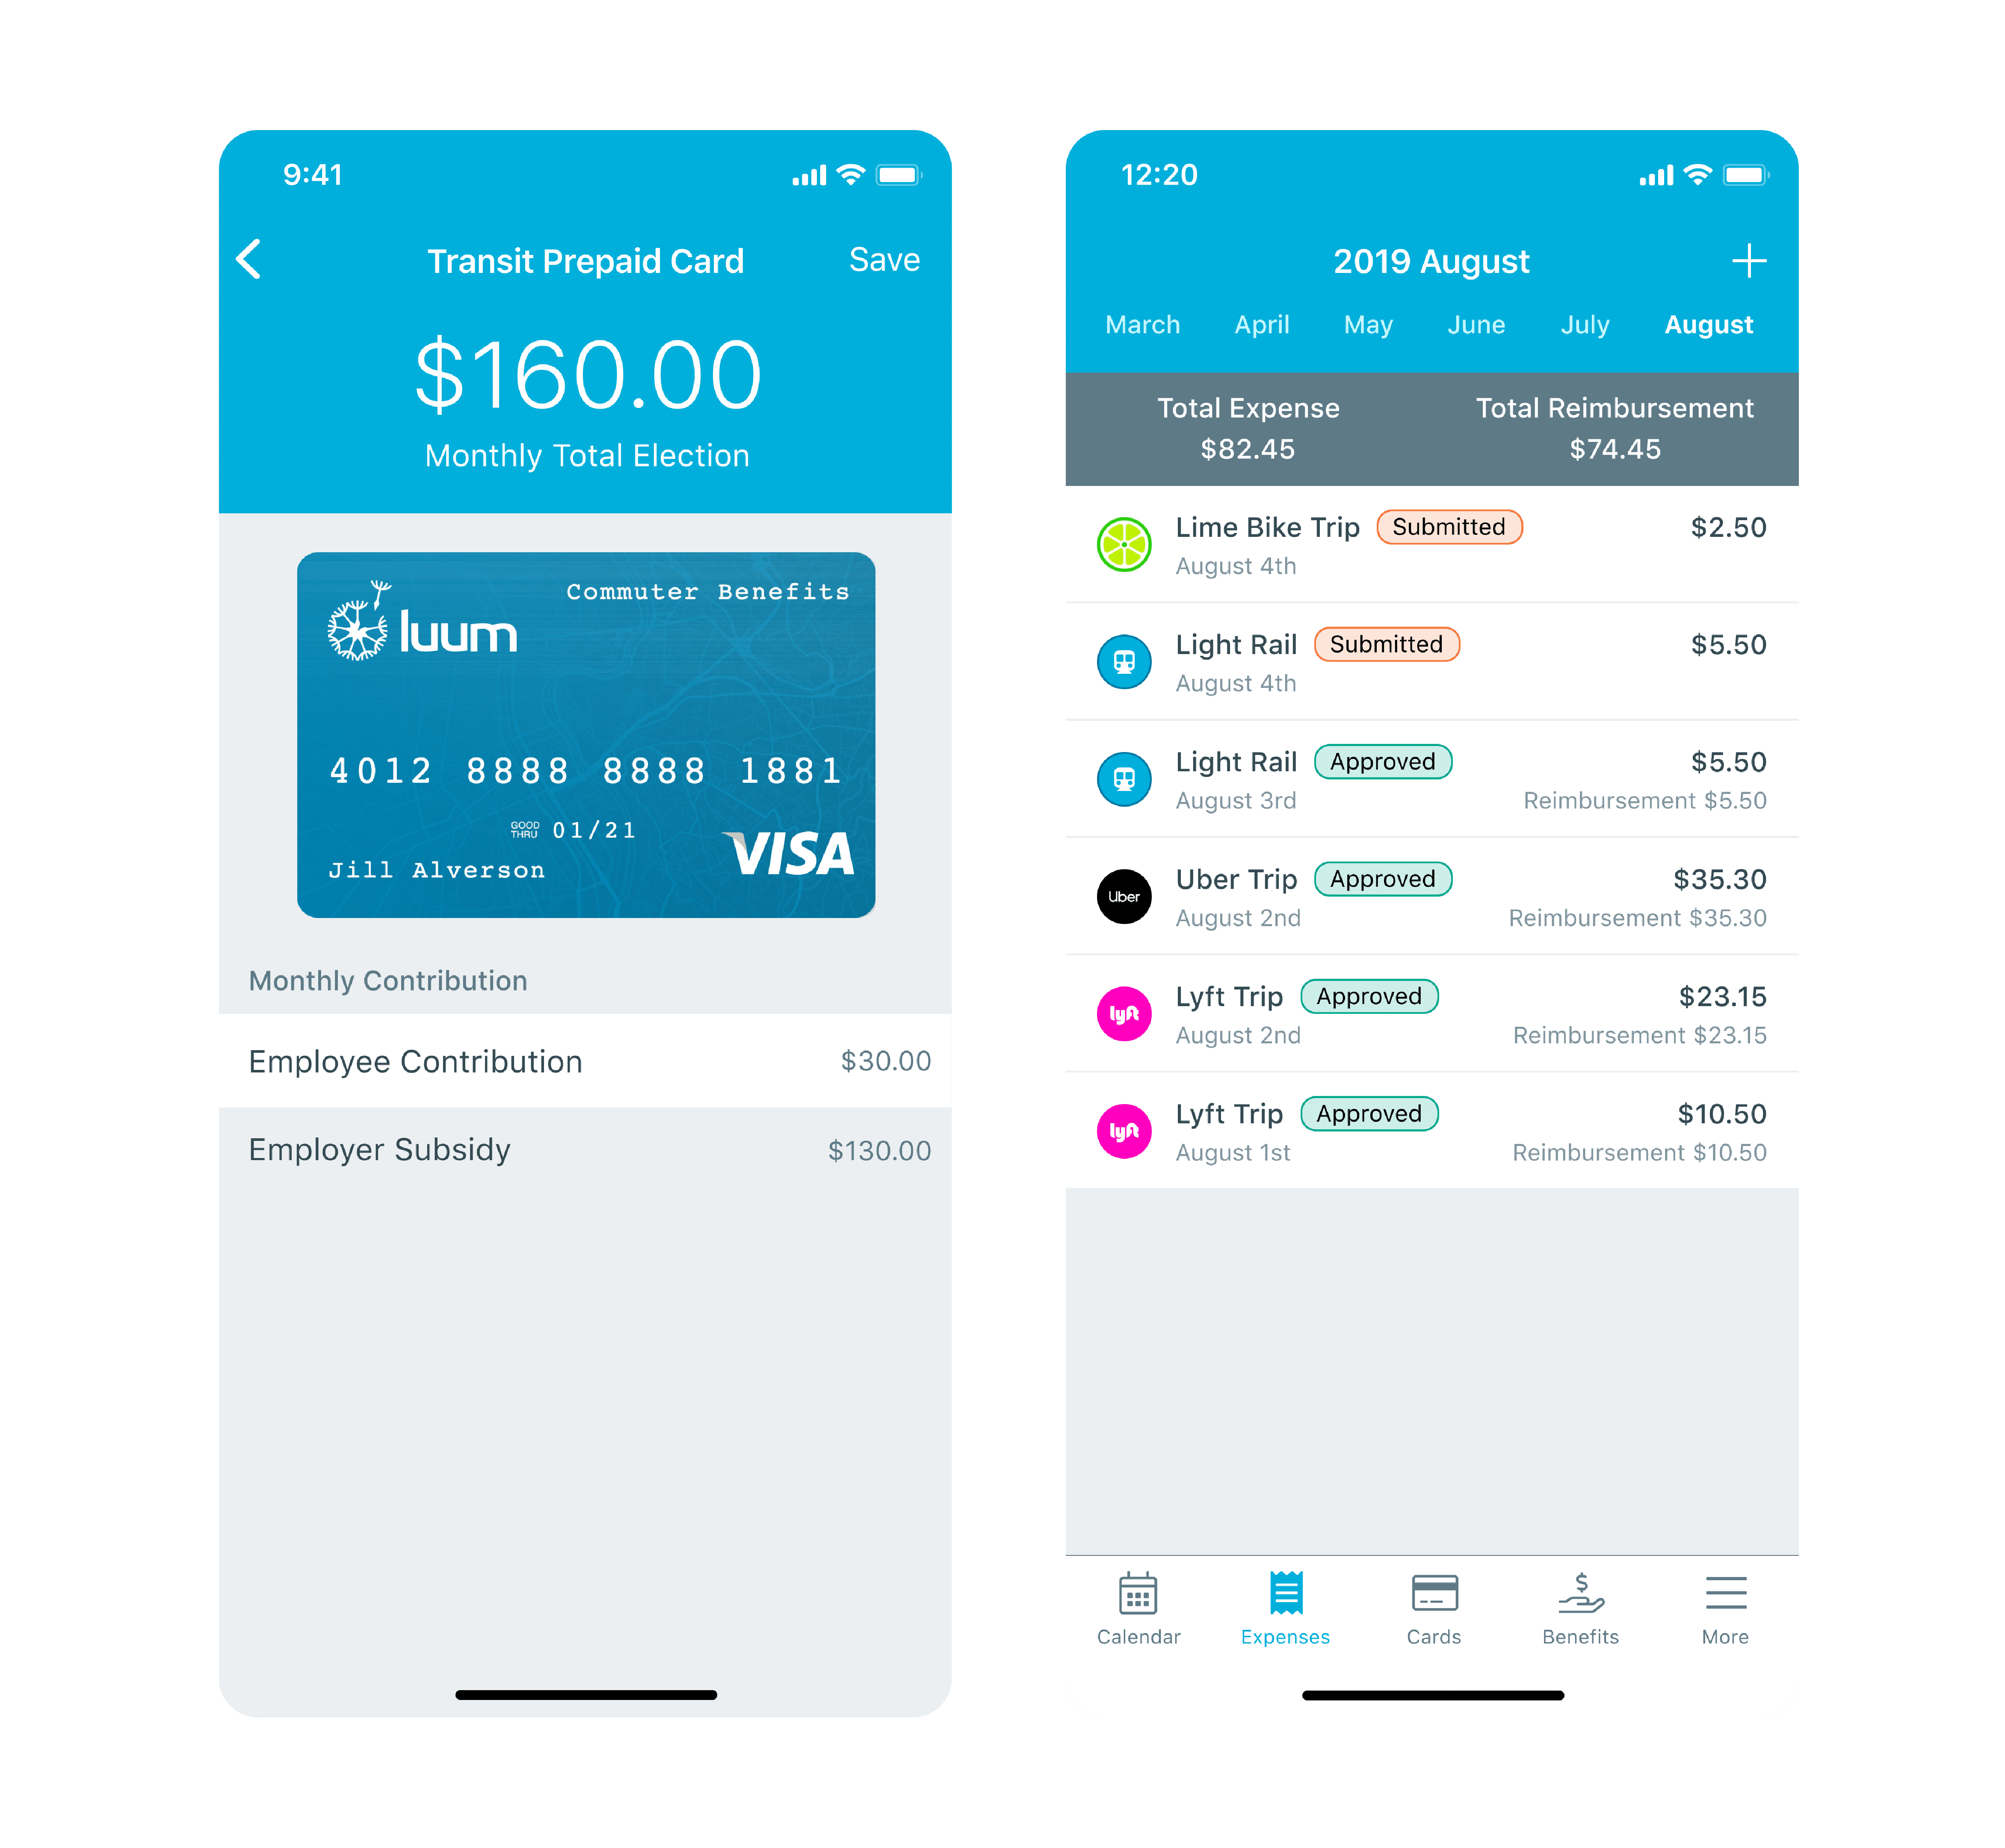 Prepaid and Expense